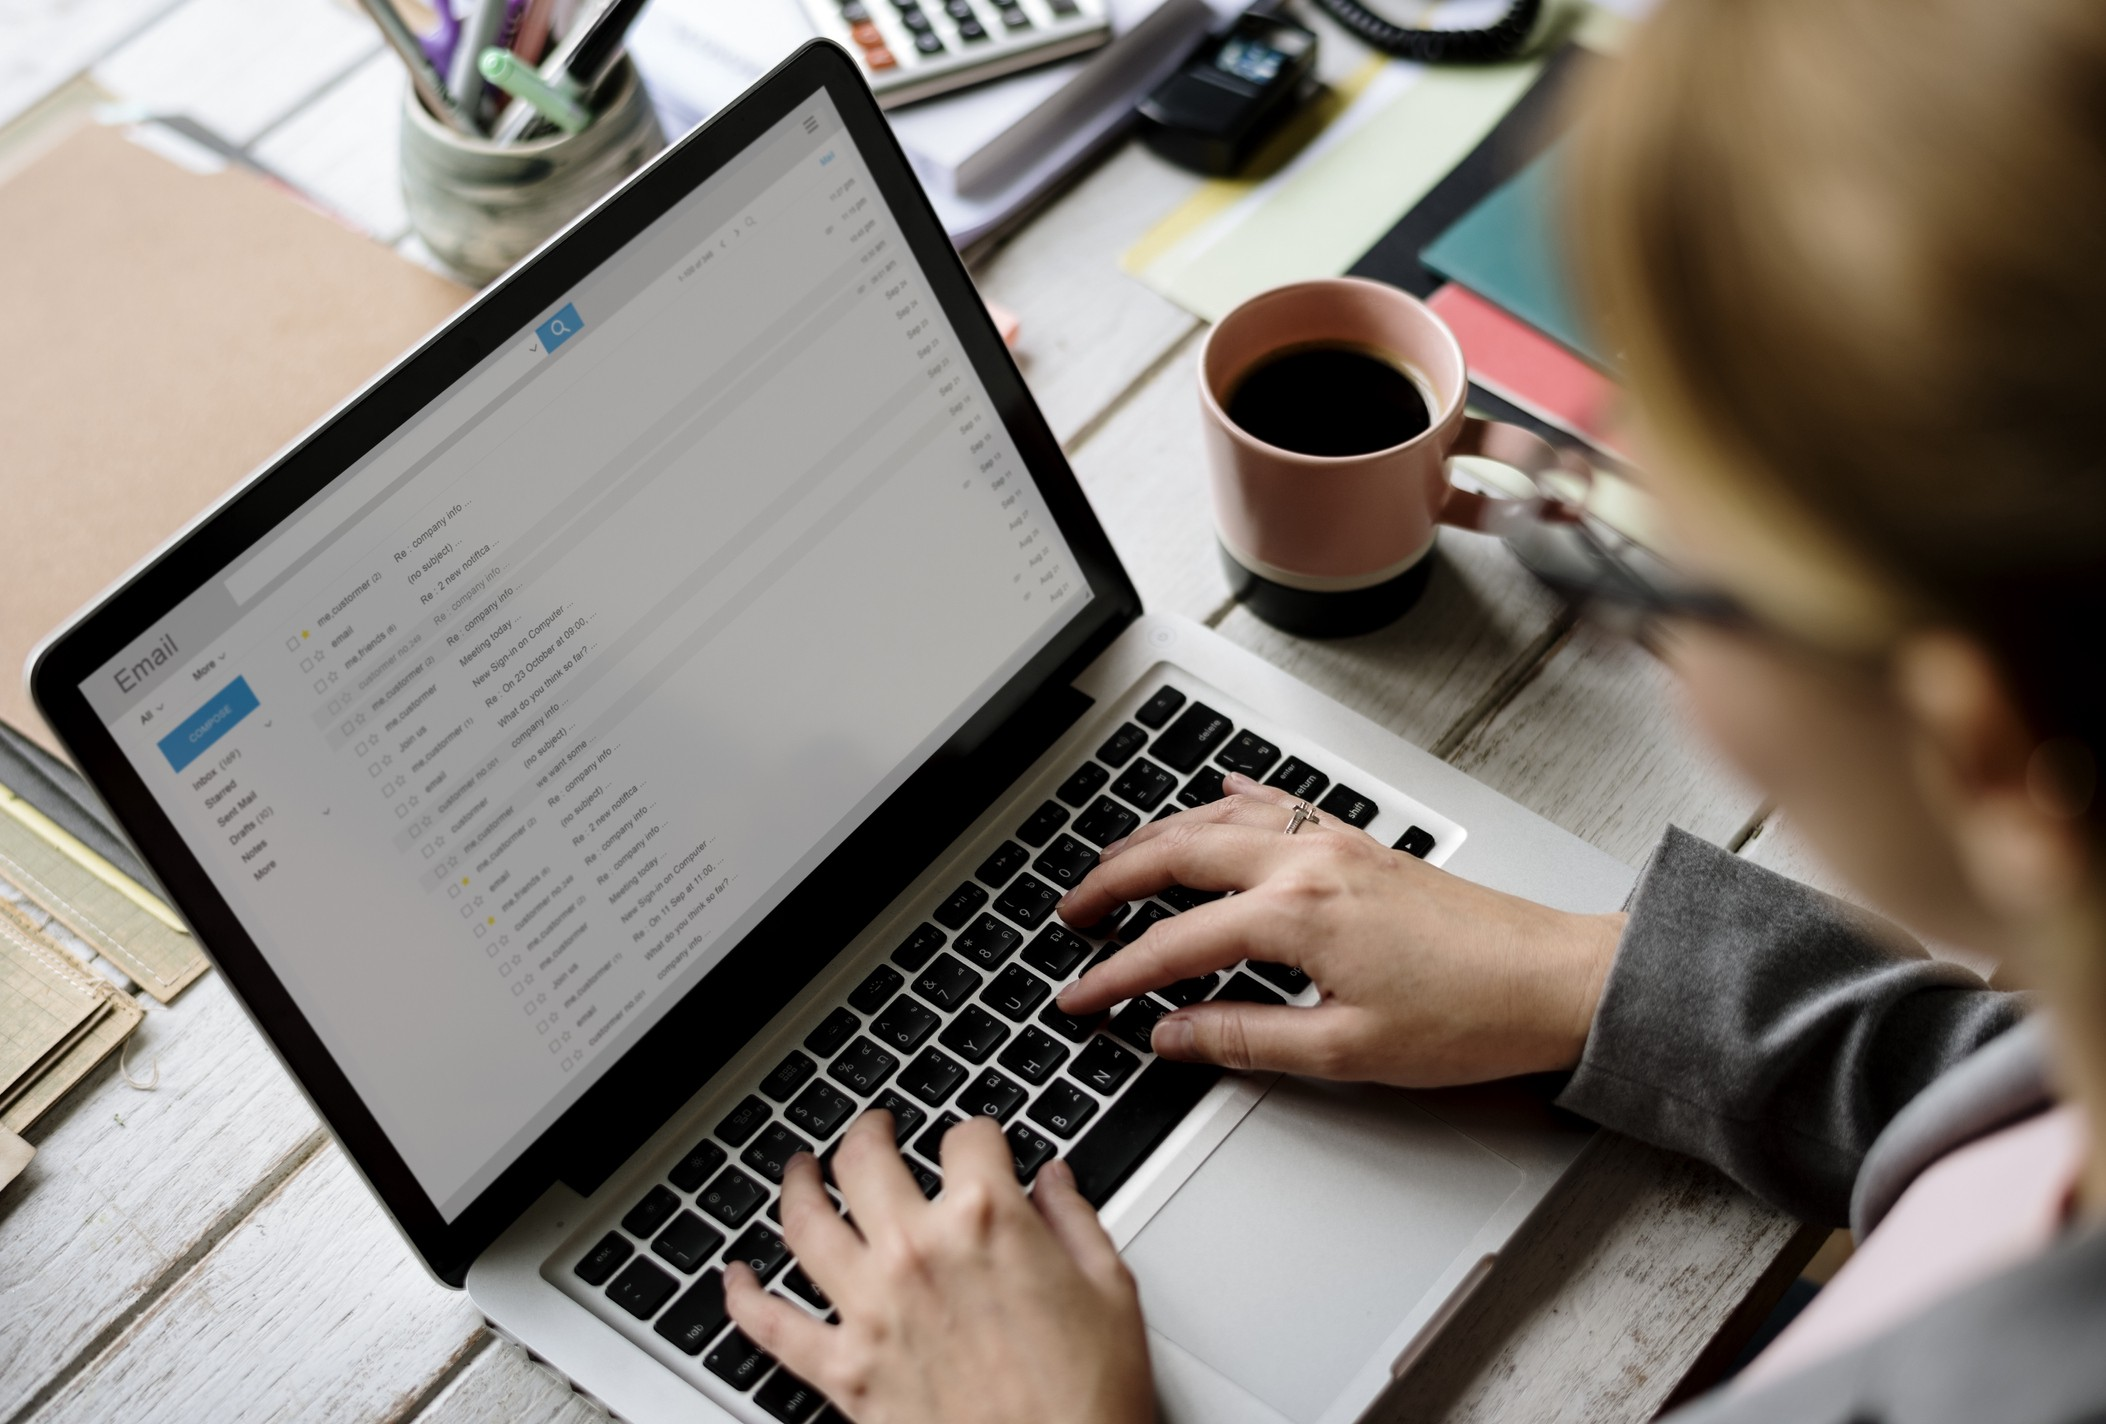 5 Tactics That Help You Write Better Emails and Improve Communication with Your Team